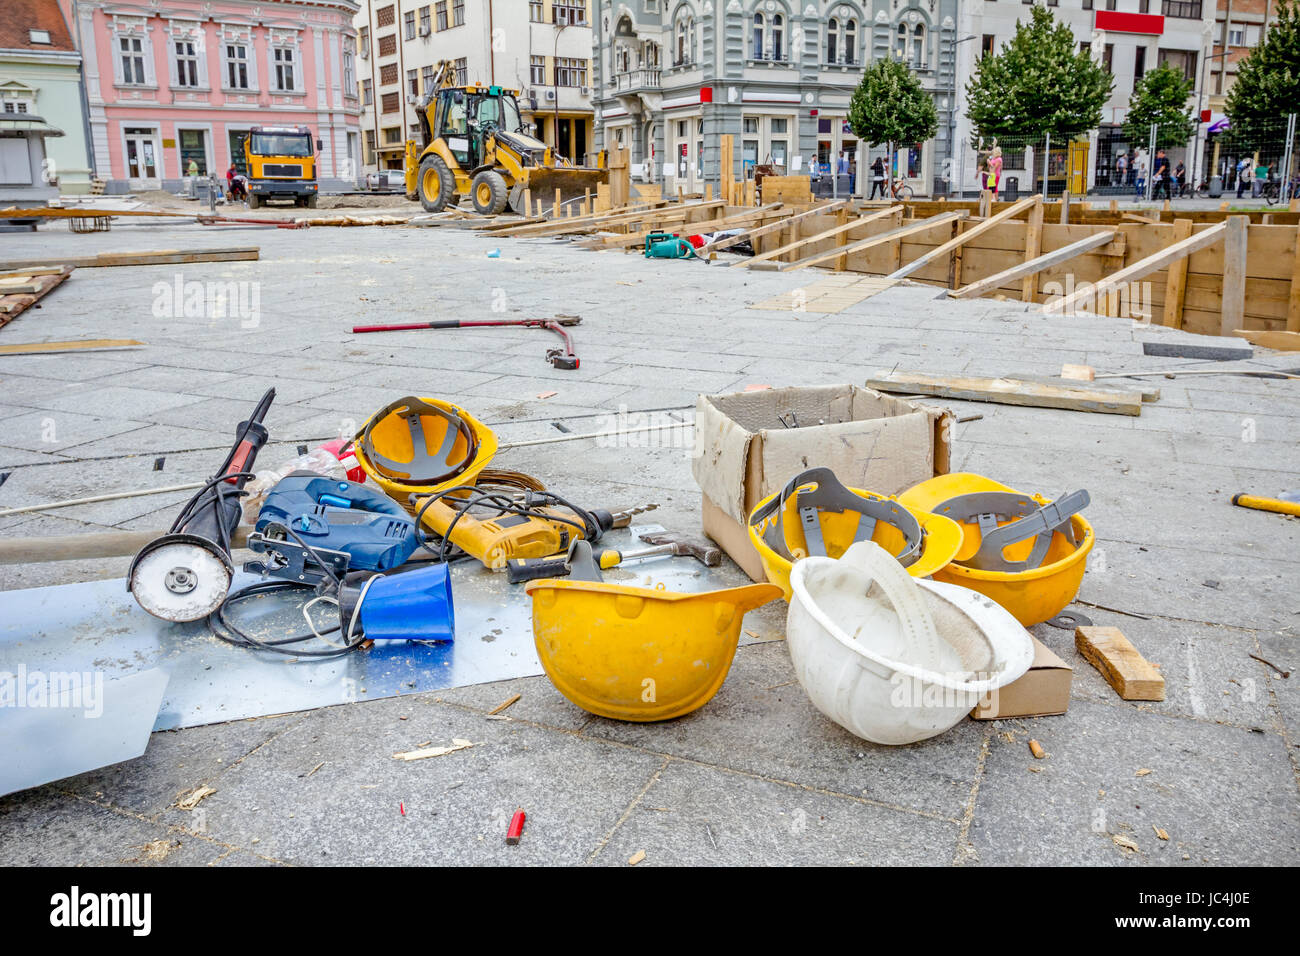 Hardhat and power tool are on the ground with plastic kettle for coffee or tea. - Stock Image